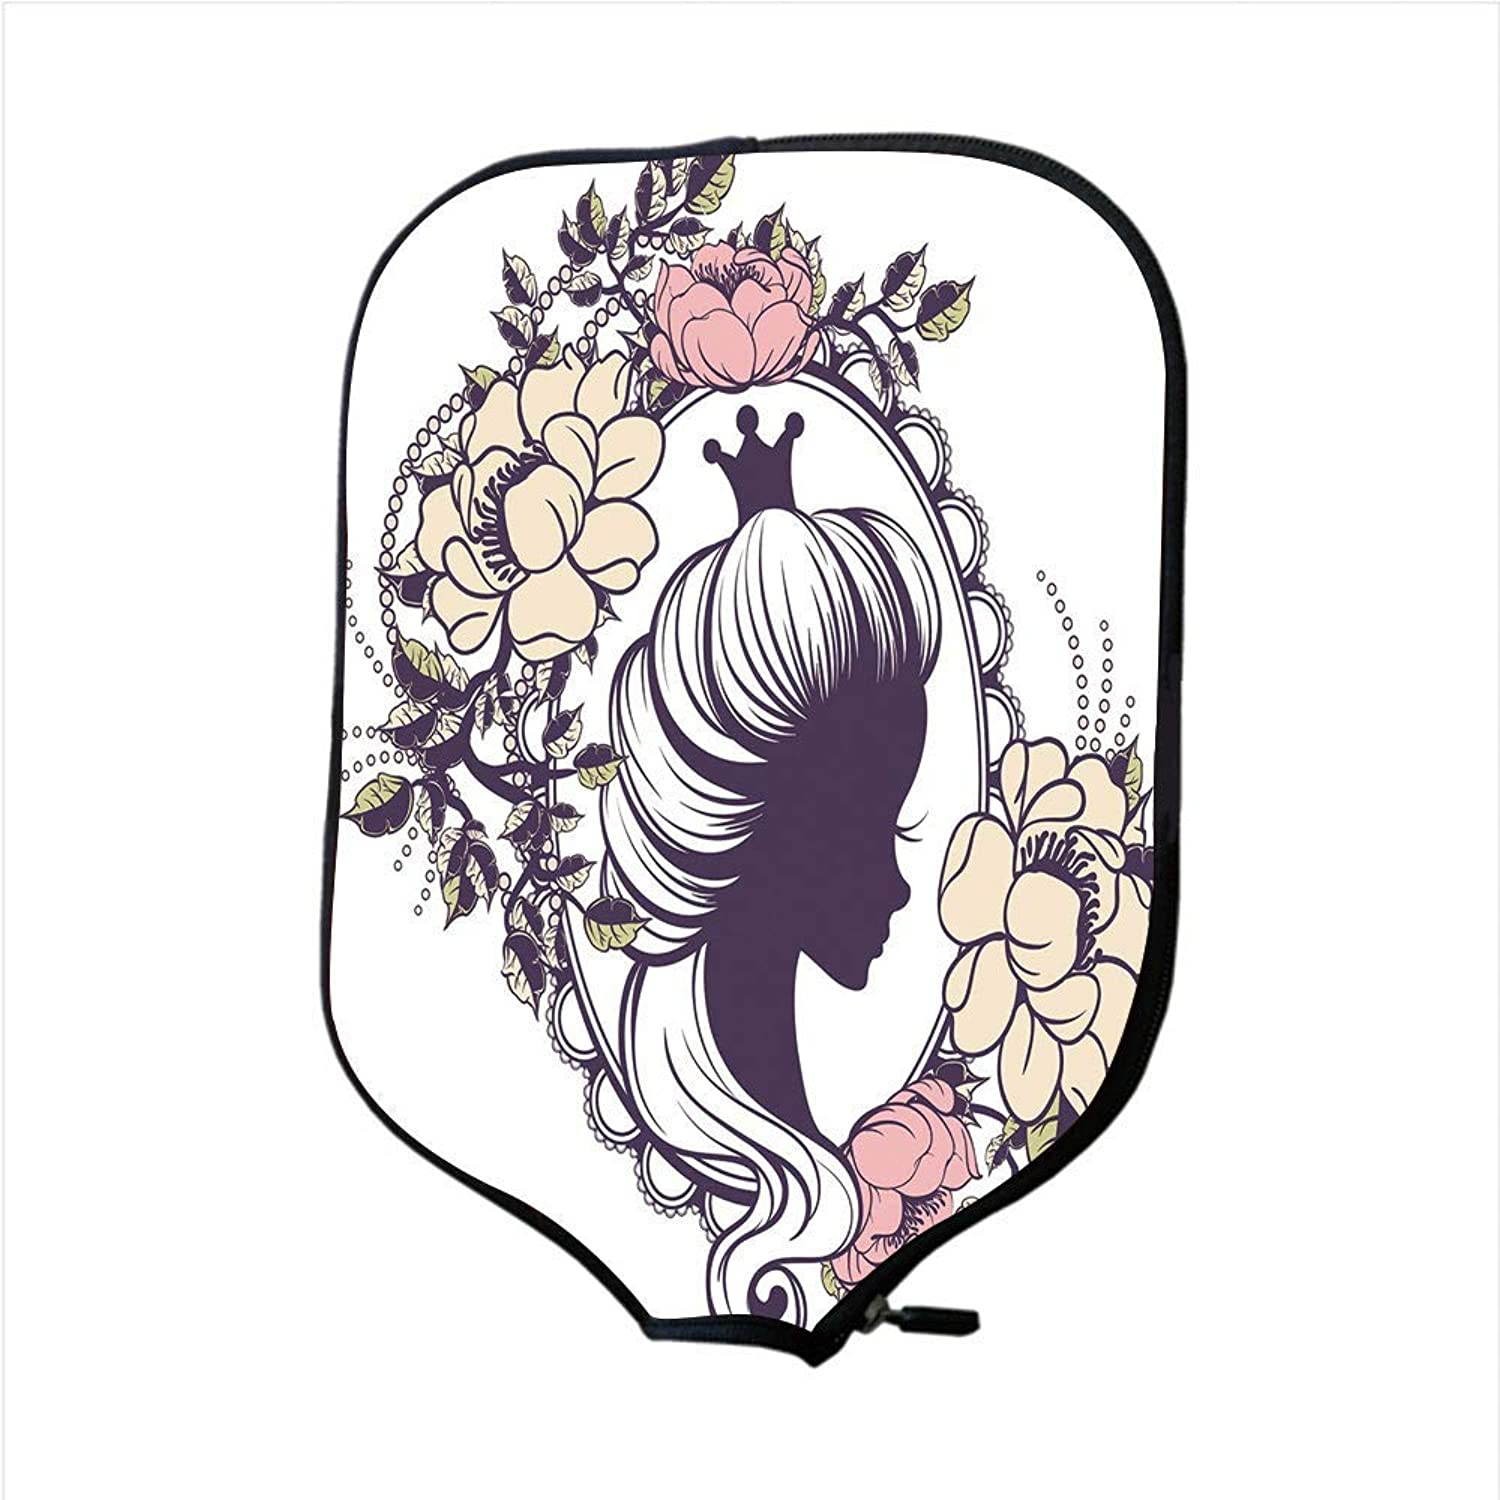 Fine Neoprene Pickleball Paddle Racket Cover Case,Queen,Young Princess Portrait Silhouette in Floral Frame Feminine Noble Woman,Coral Sand Brown Black,Fit for Most Rackets